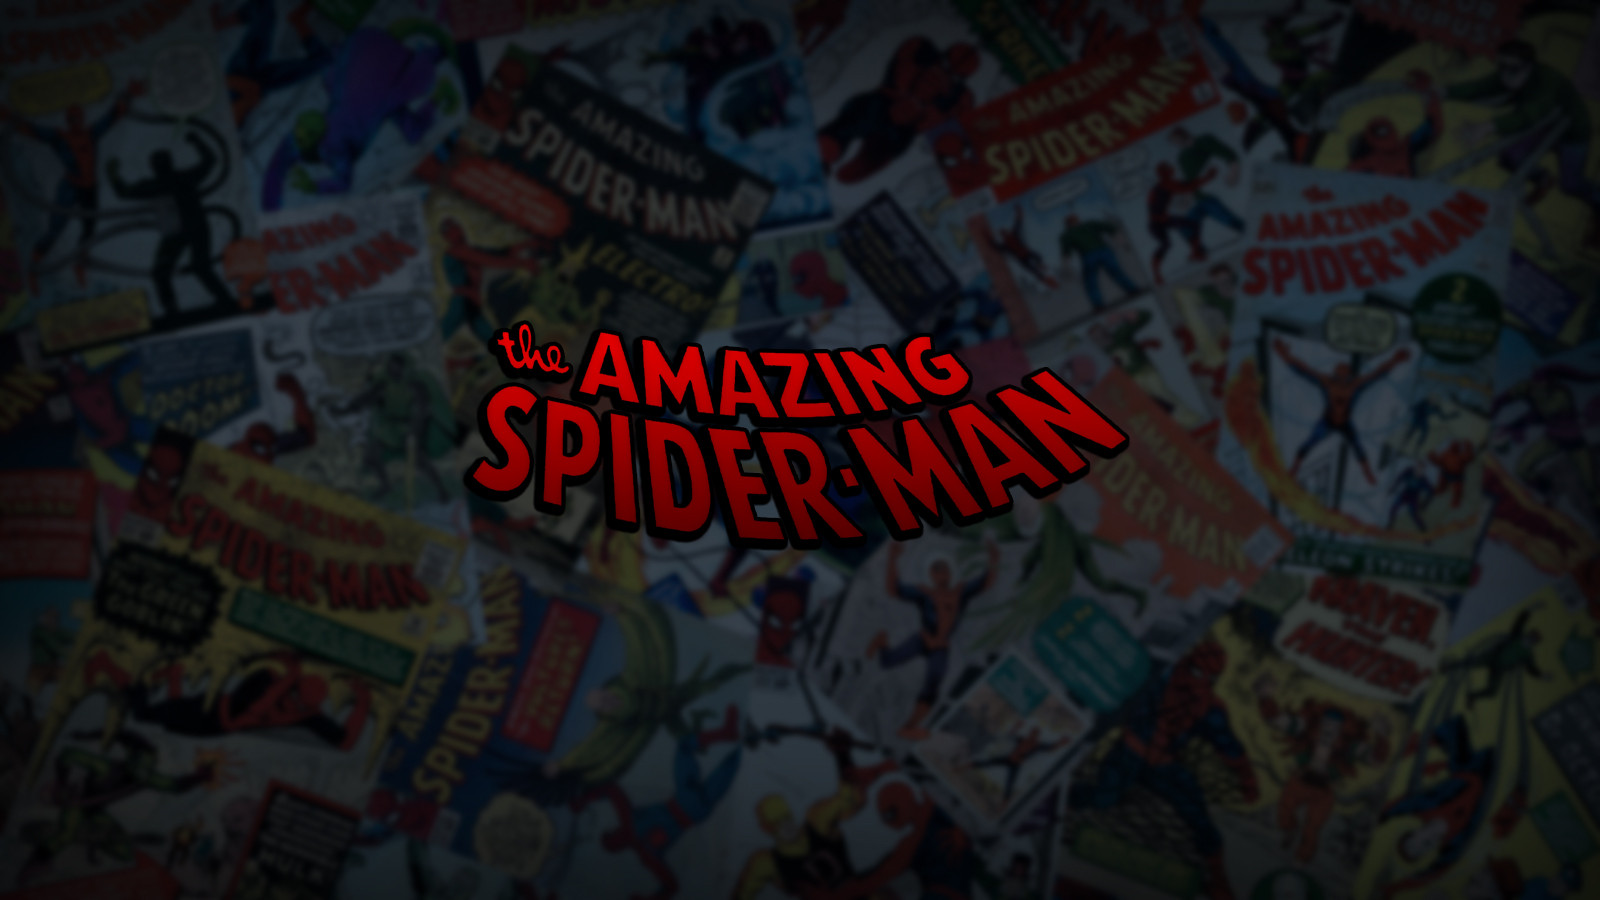 The Amazing Spider Man Widescreen Wallpaper